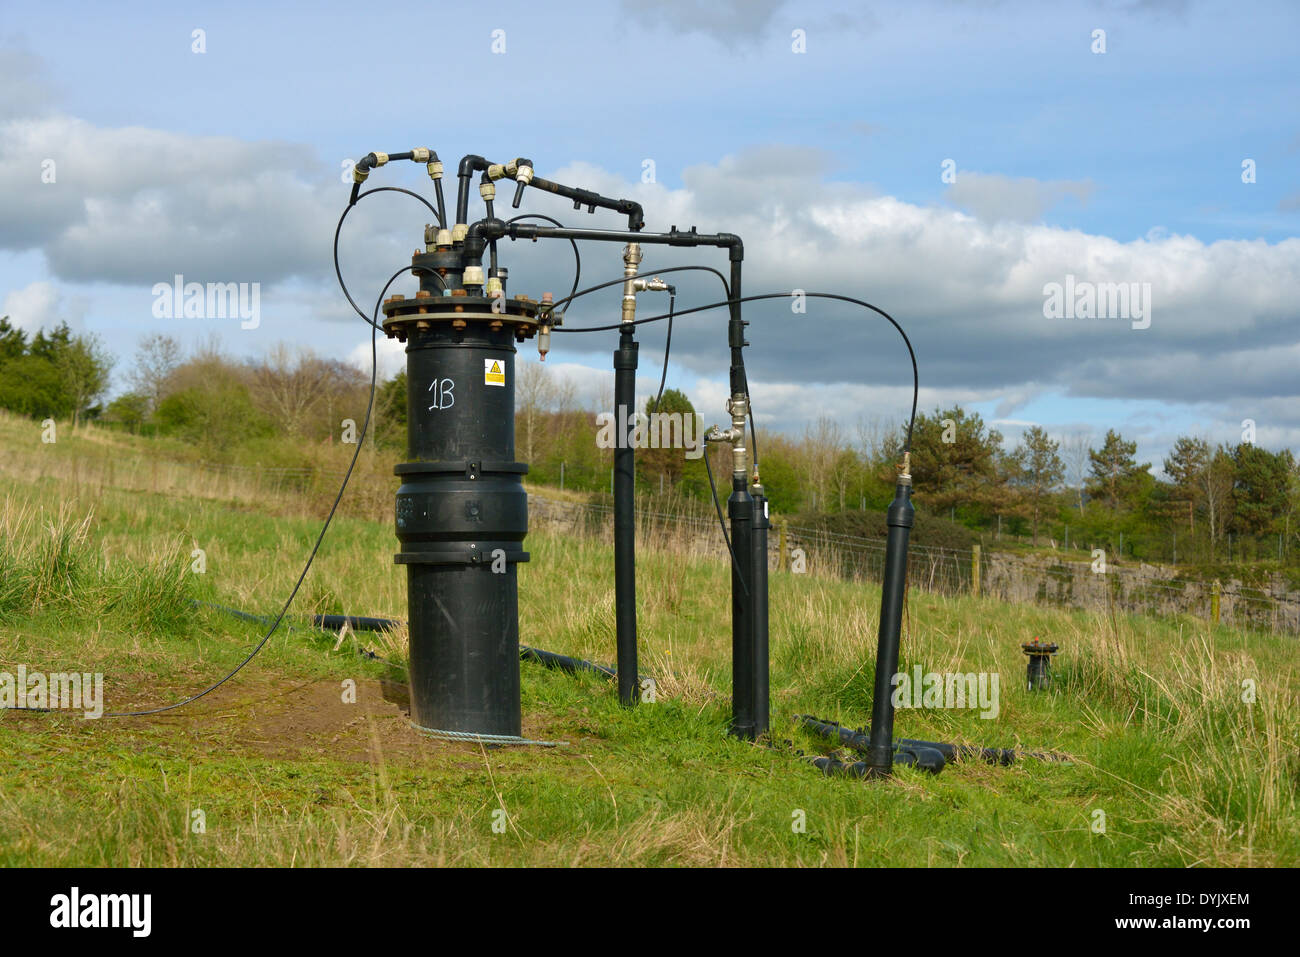 landfill-gas-collection-system-kendal-quarry-kendal-cumbria-england-DYJXEM.jpg